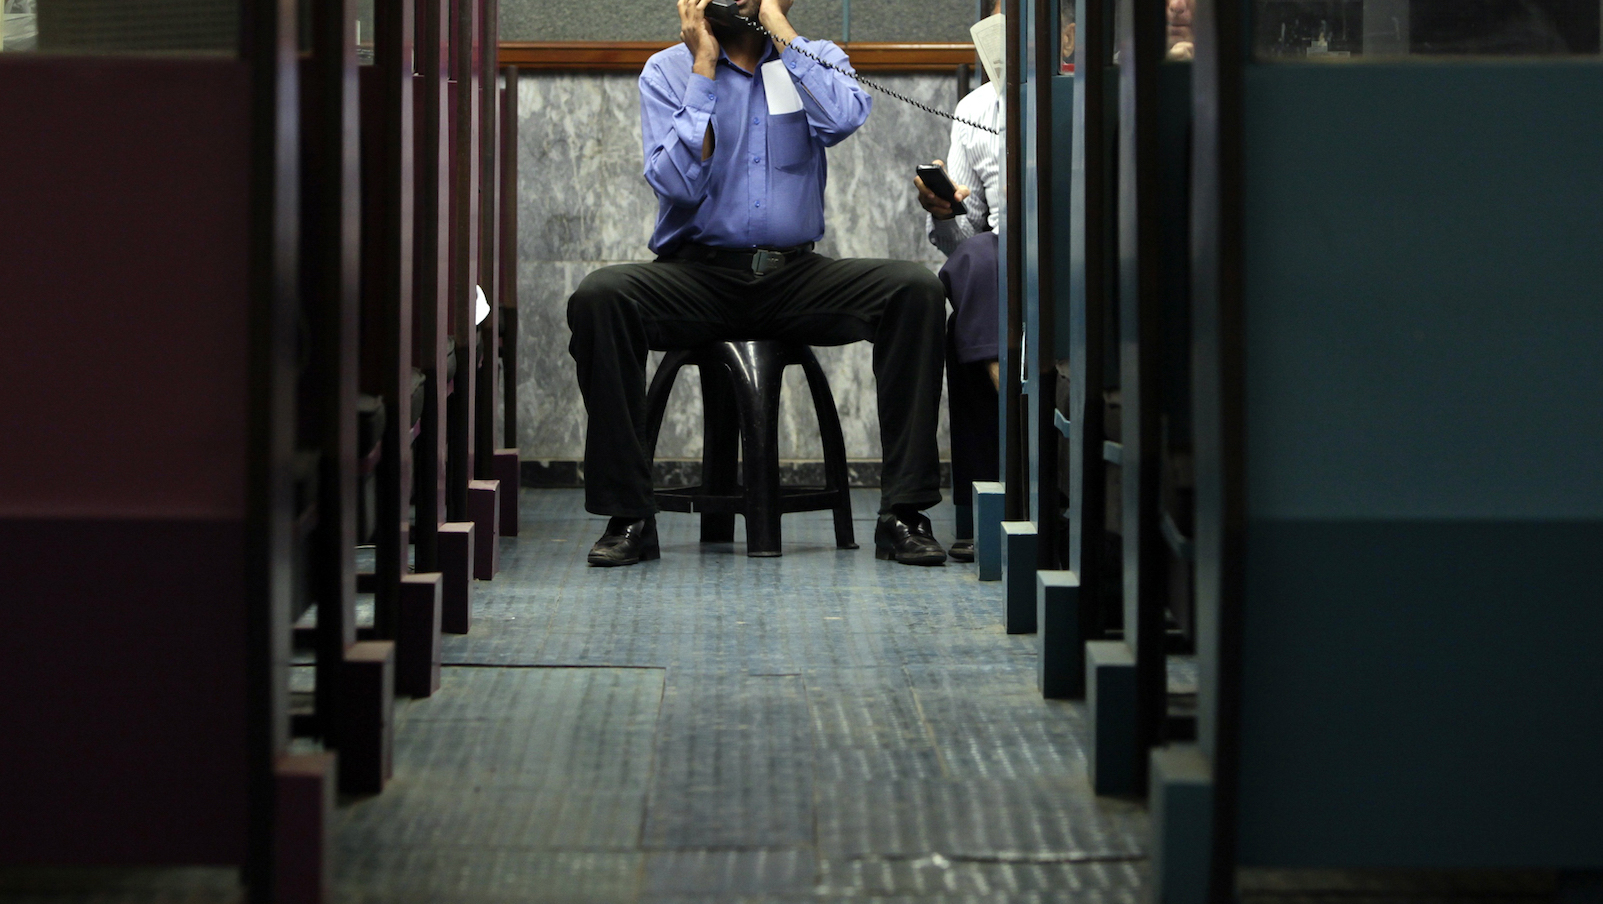 A man uses a phone between booths while monitoring share prices during a trading session at the Karachi Stock Exchange August 10, 2011. REUTERS/Akhtar Soomro (PAKISTAN - Tags: BUSINESS IMAGES OF THE DAY) - RTR2PSCA